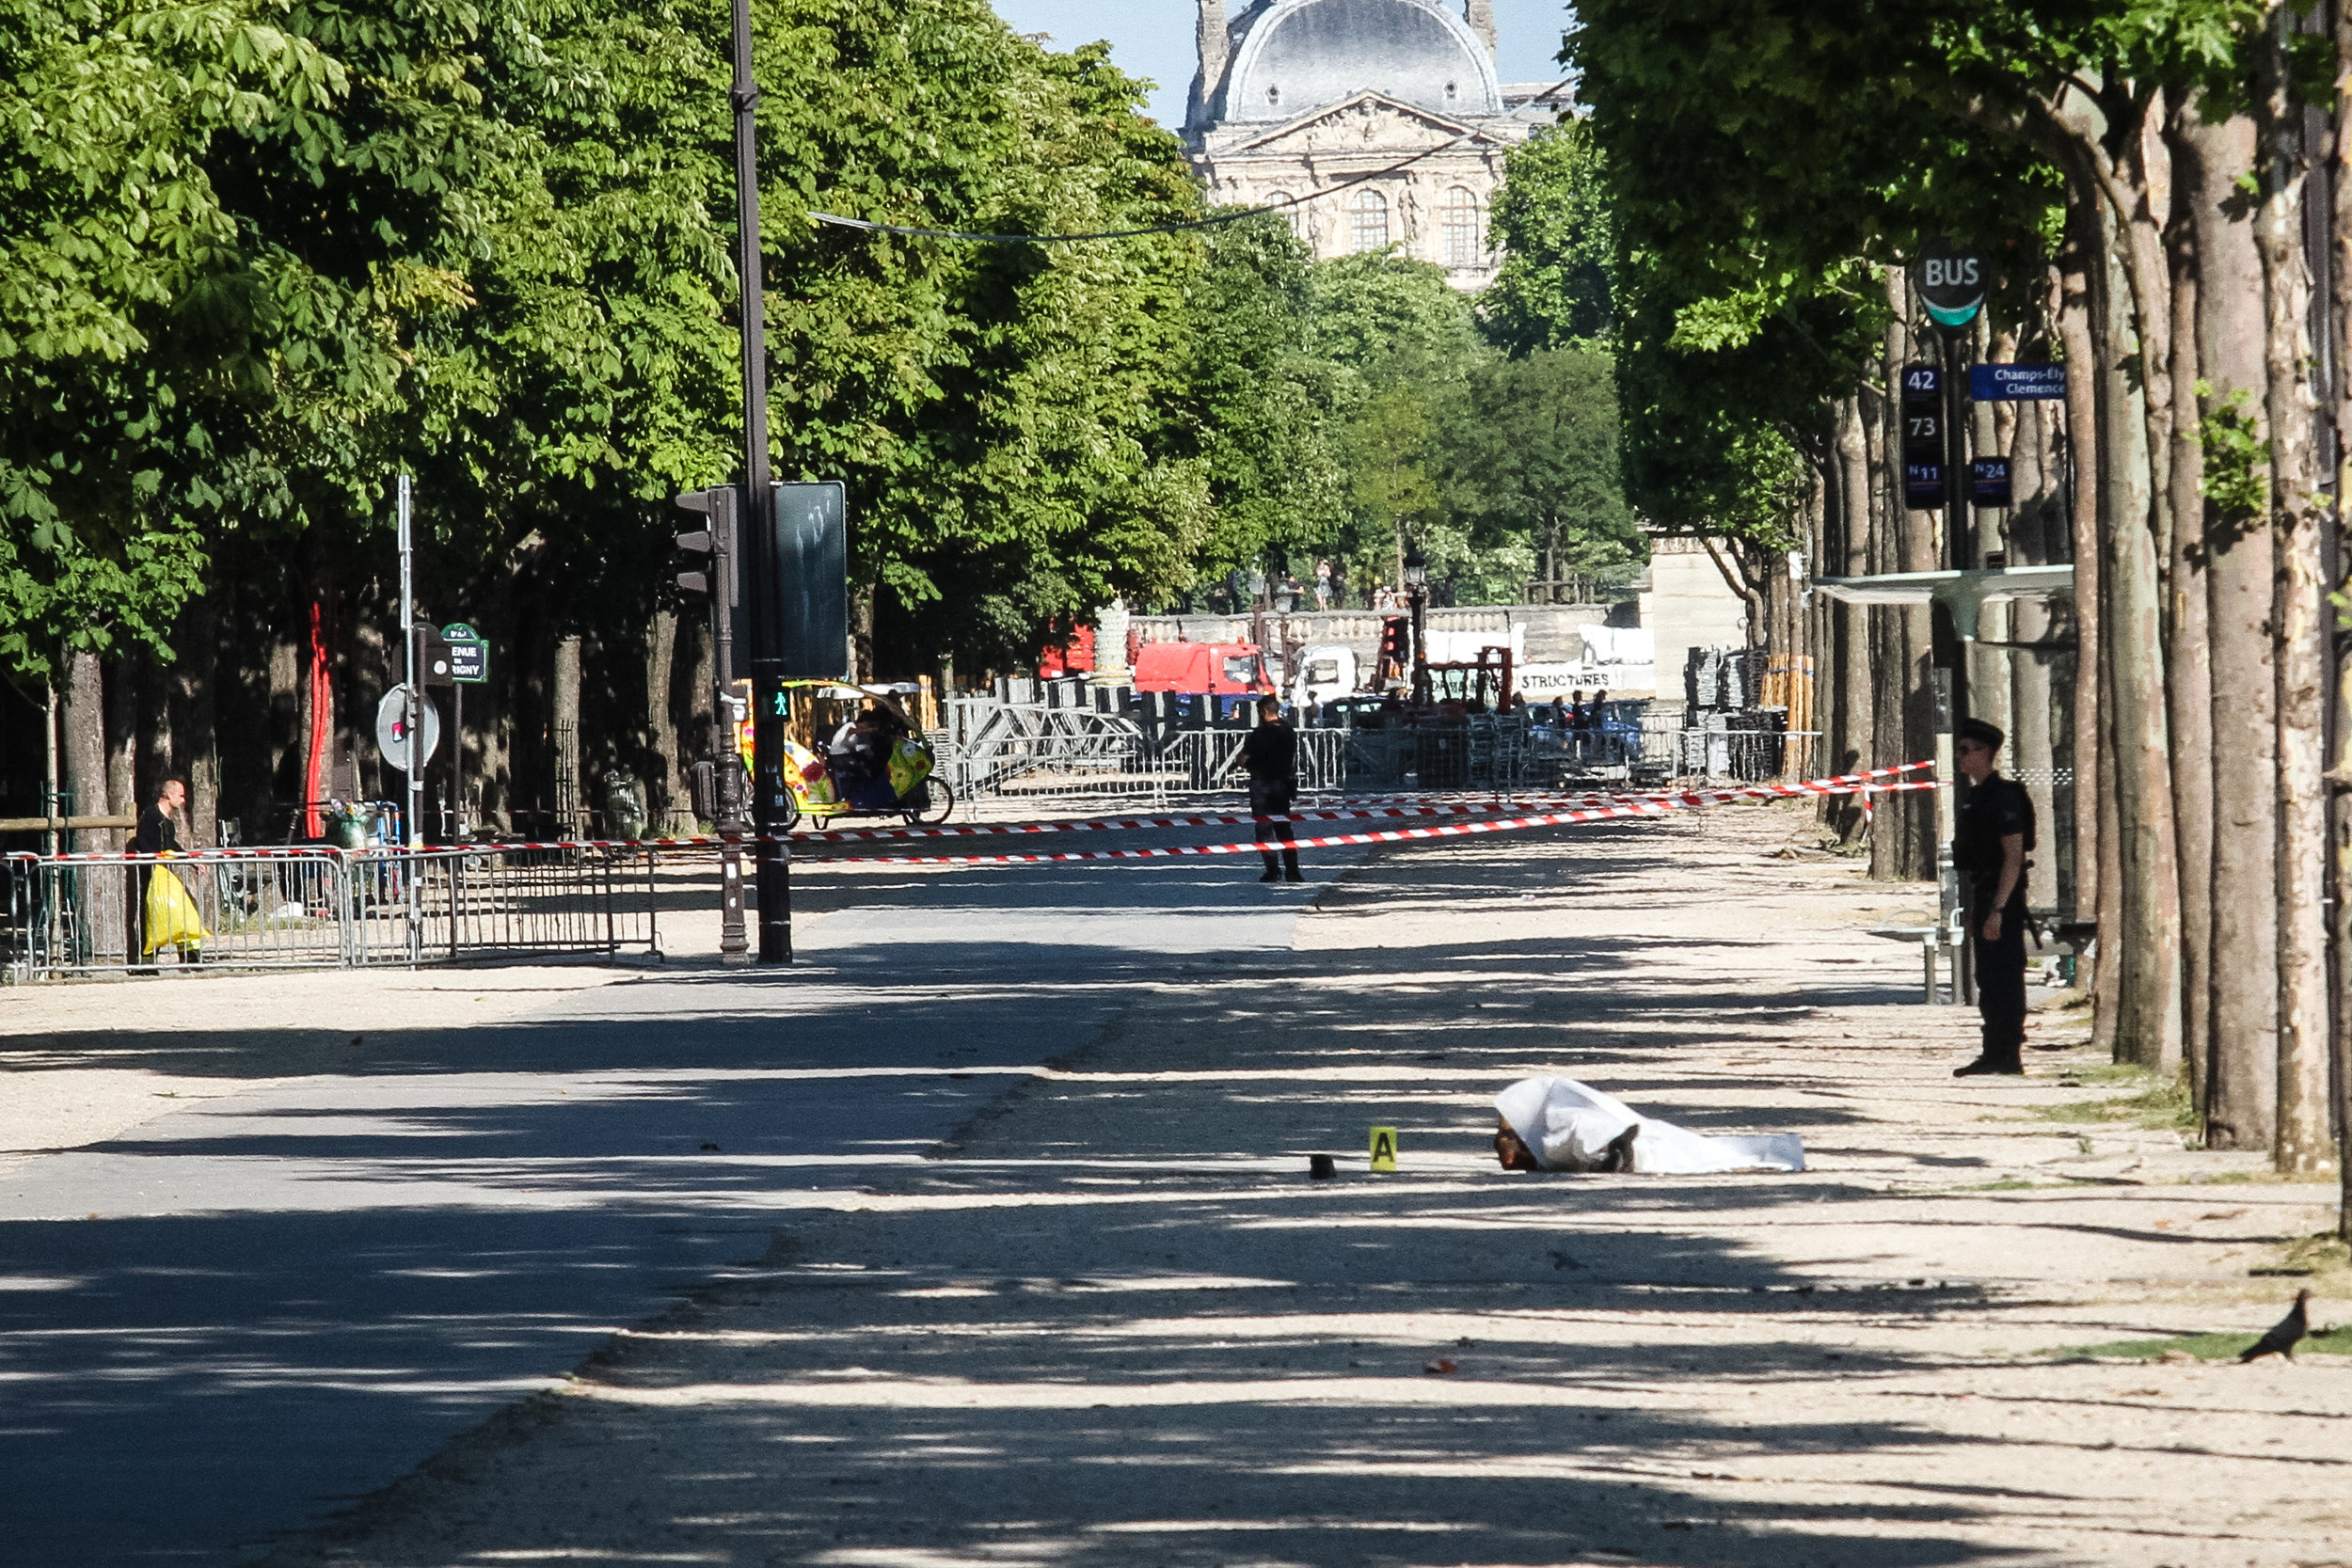 64-20170619-ATTAQUE-CHAMPS-ELYSEES©Augustin-Le_Gall-Haytham-Pictures-IMG_1560.jpg